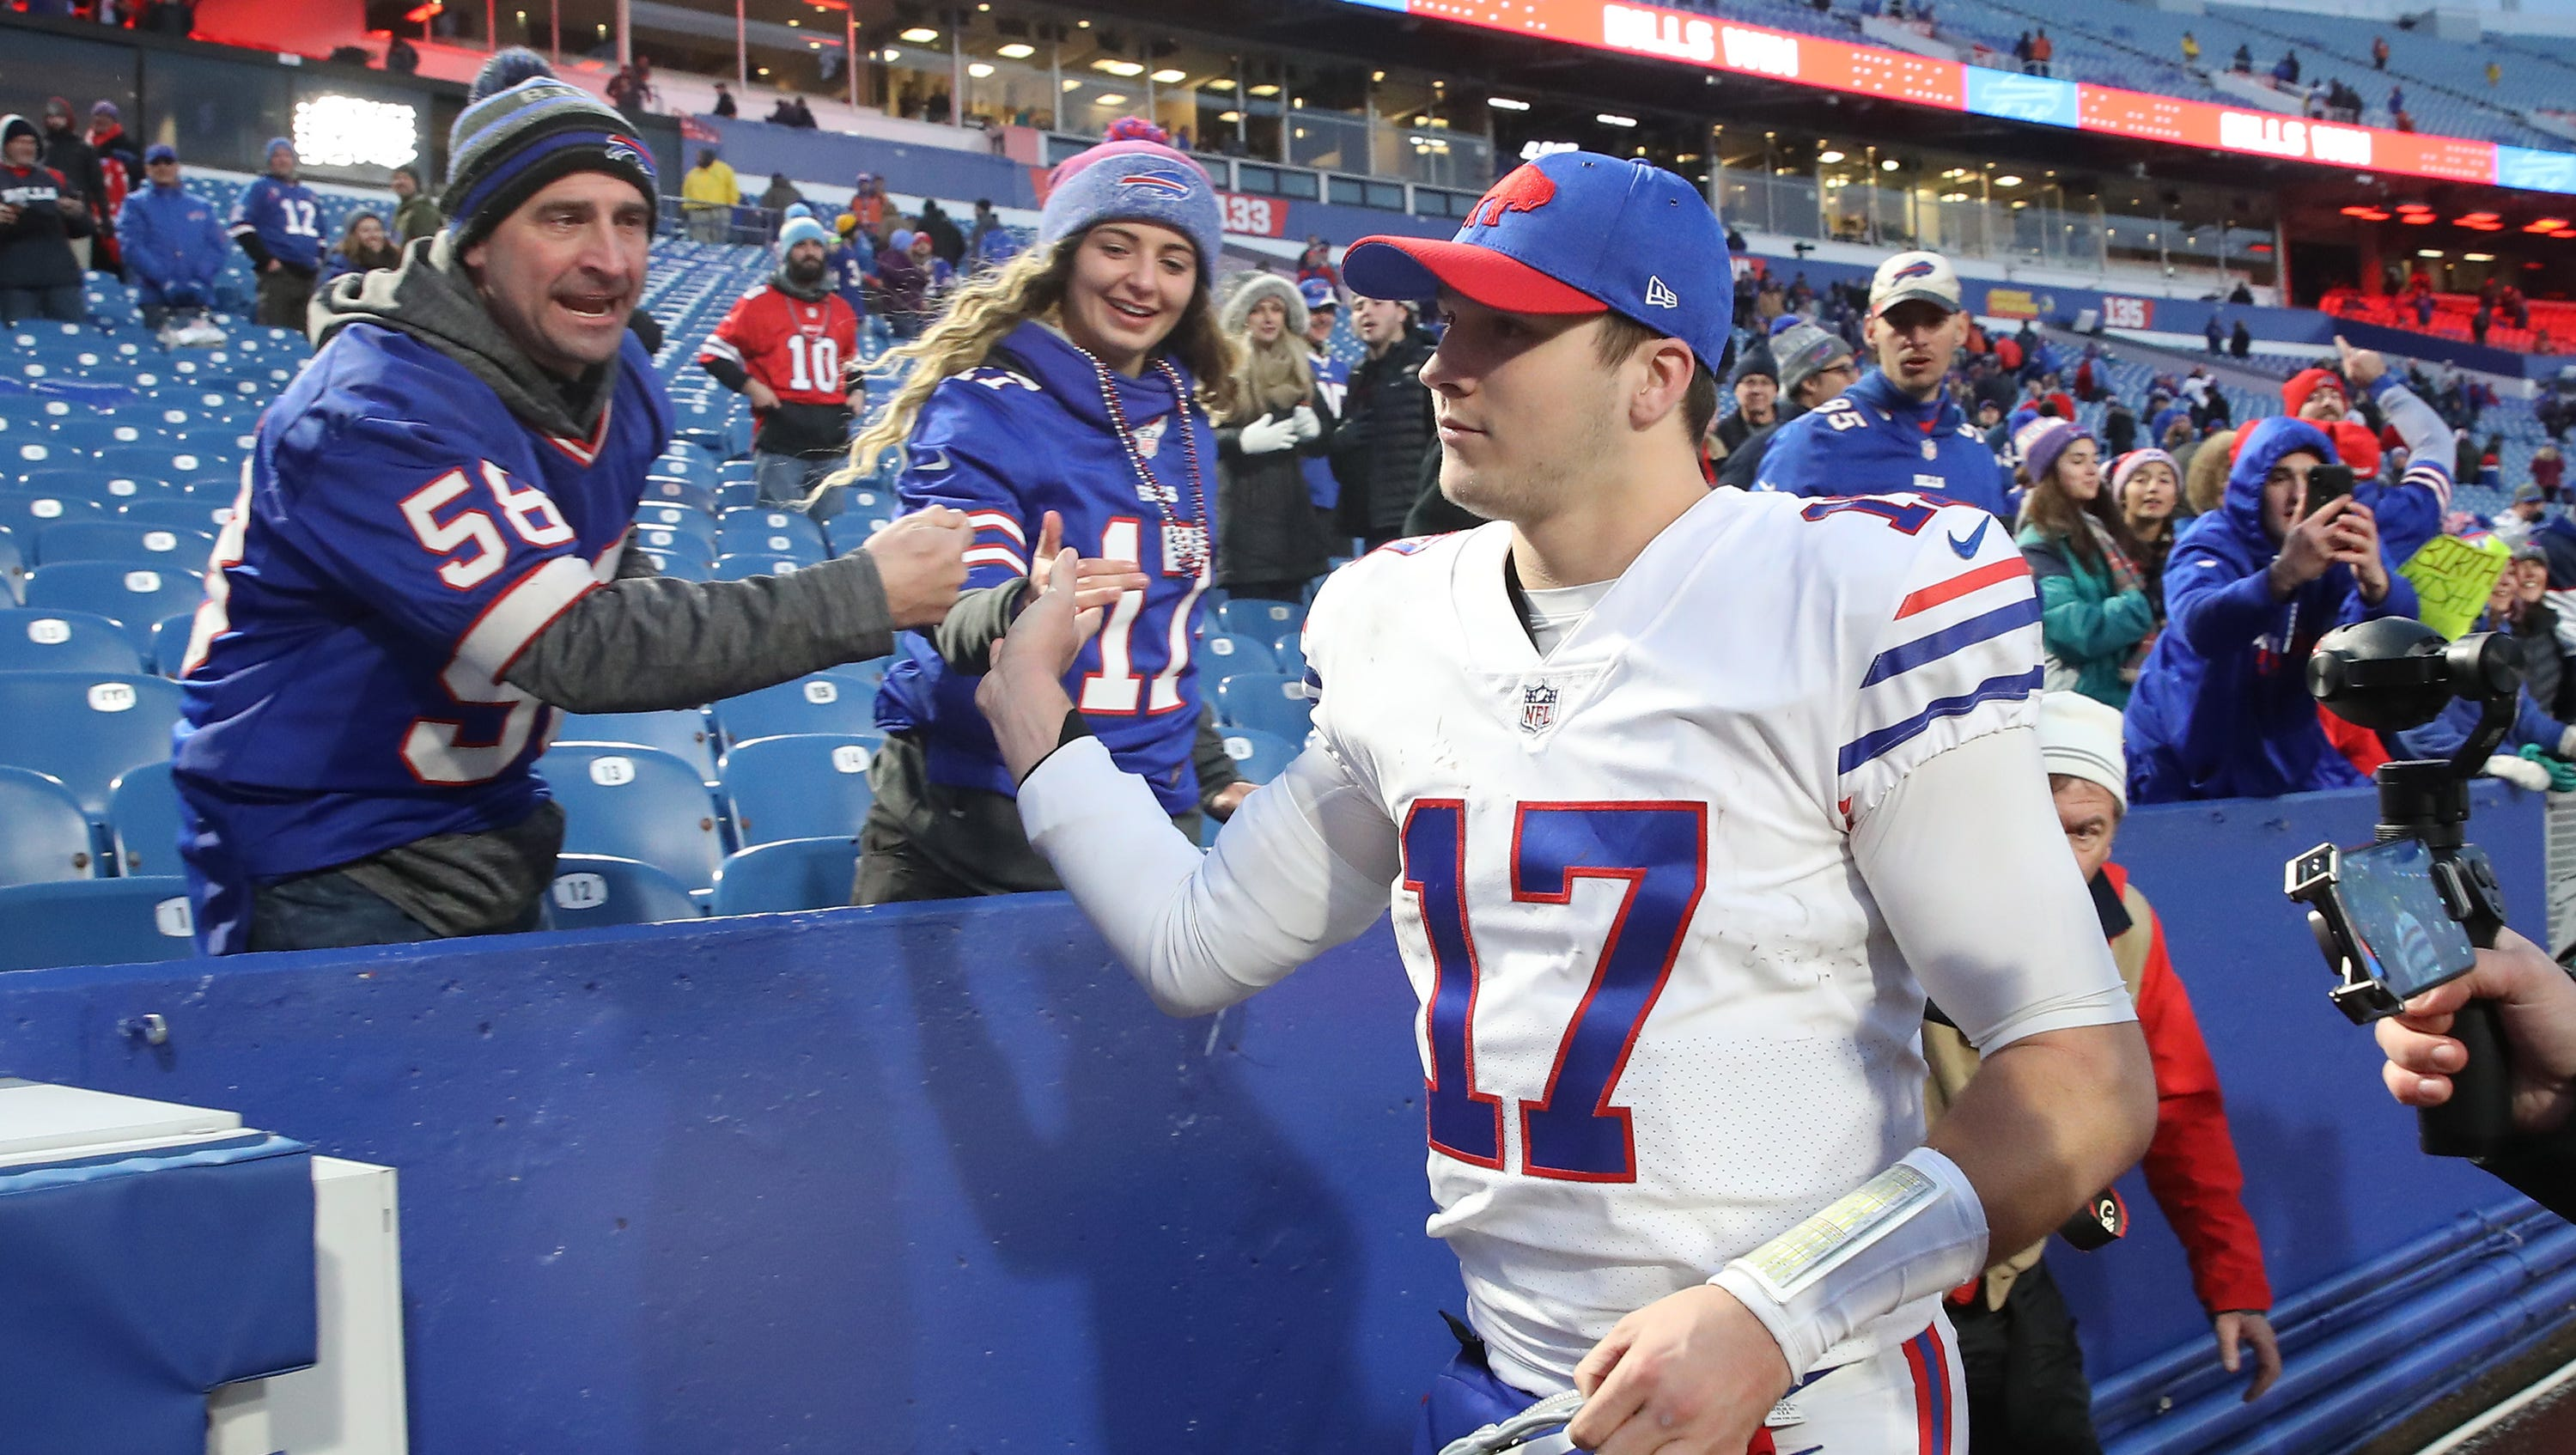 BUFFALO, NY - NOVEMBER 25: Josh Allen #17 of the Buffalo Bills celebrates their victory with fans during NFL game action against the Jacksonville Jaguars at New Era Field on November 25, 2018 in Buffalo, New York. (Photo by Tom Szczerbowski/Getty Images)